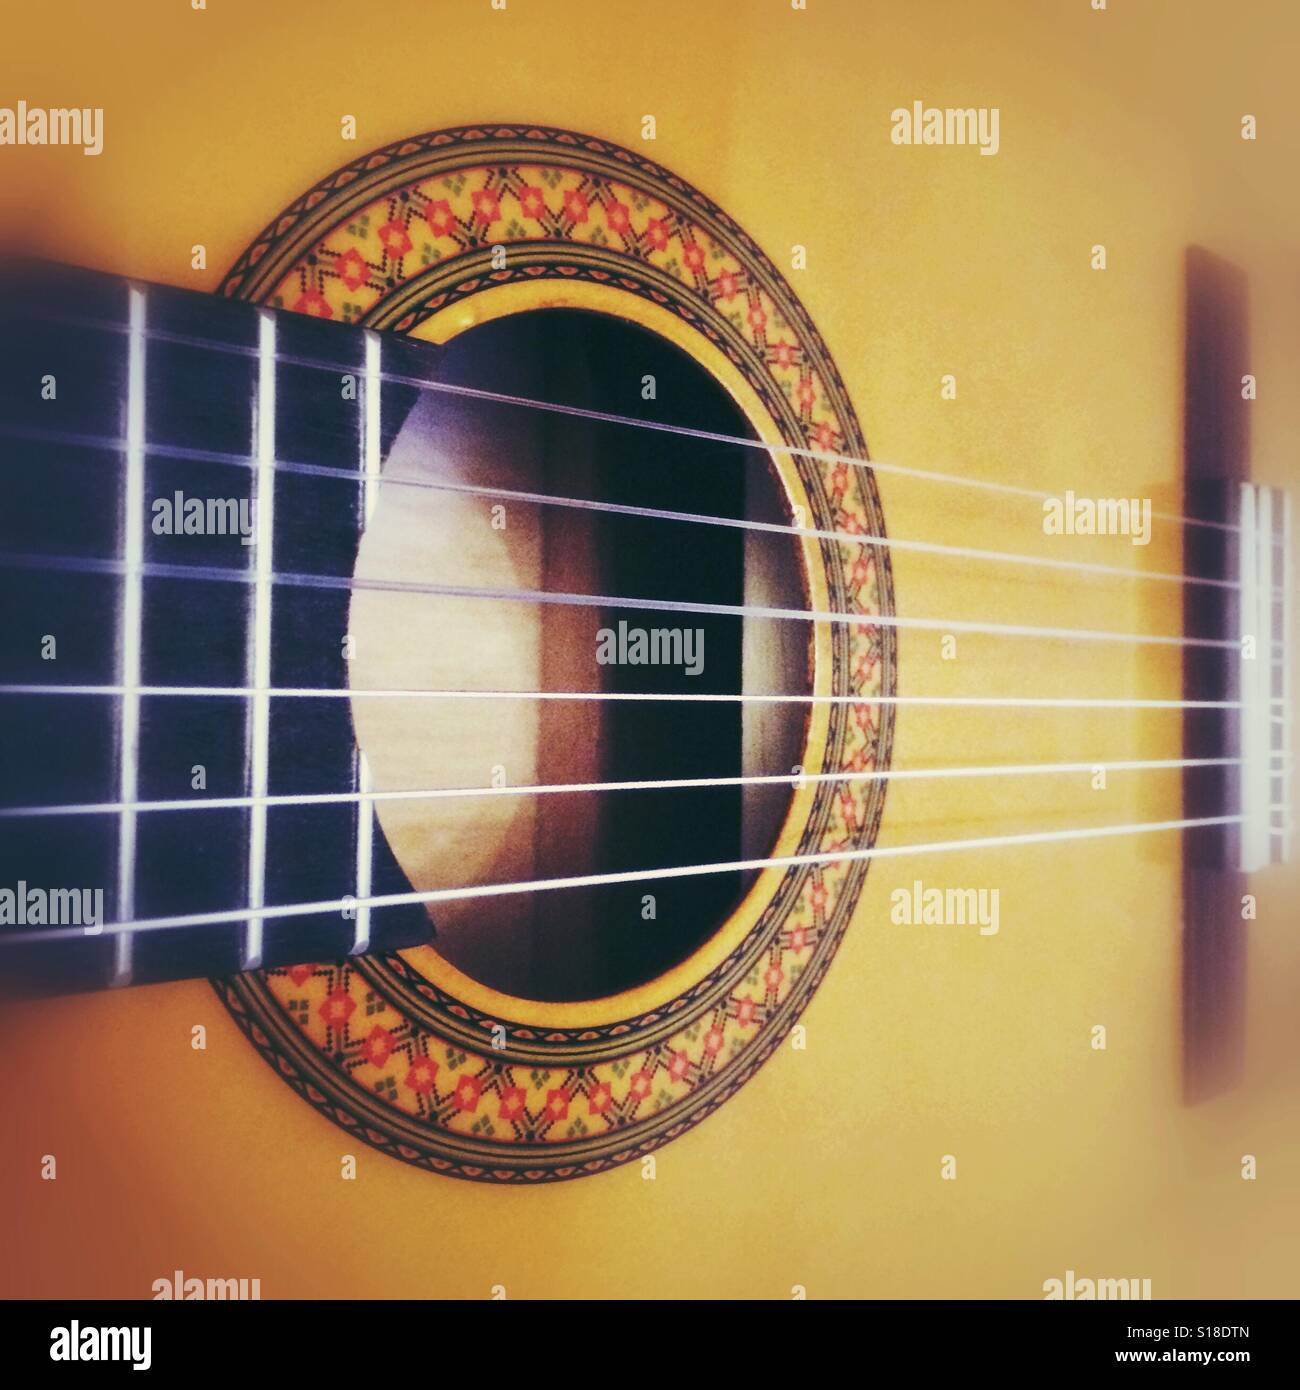 An acoustic guitar - Stock Image